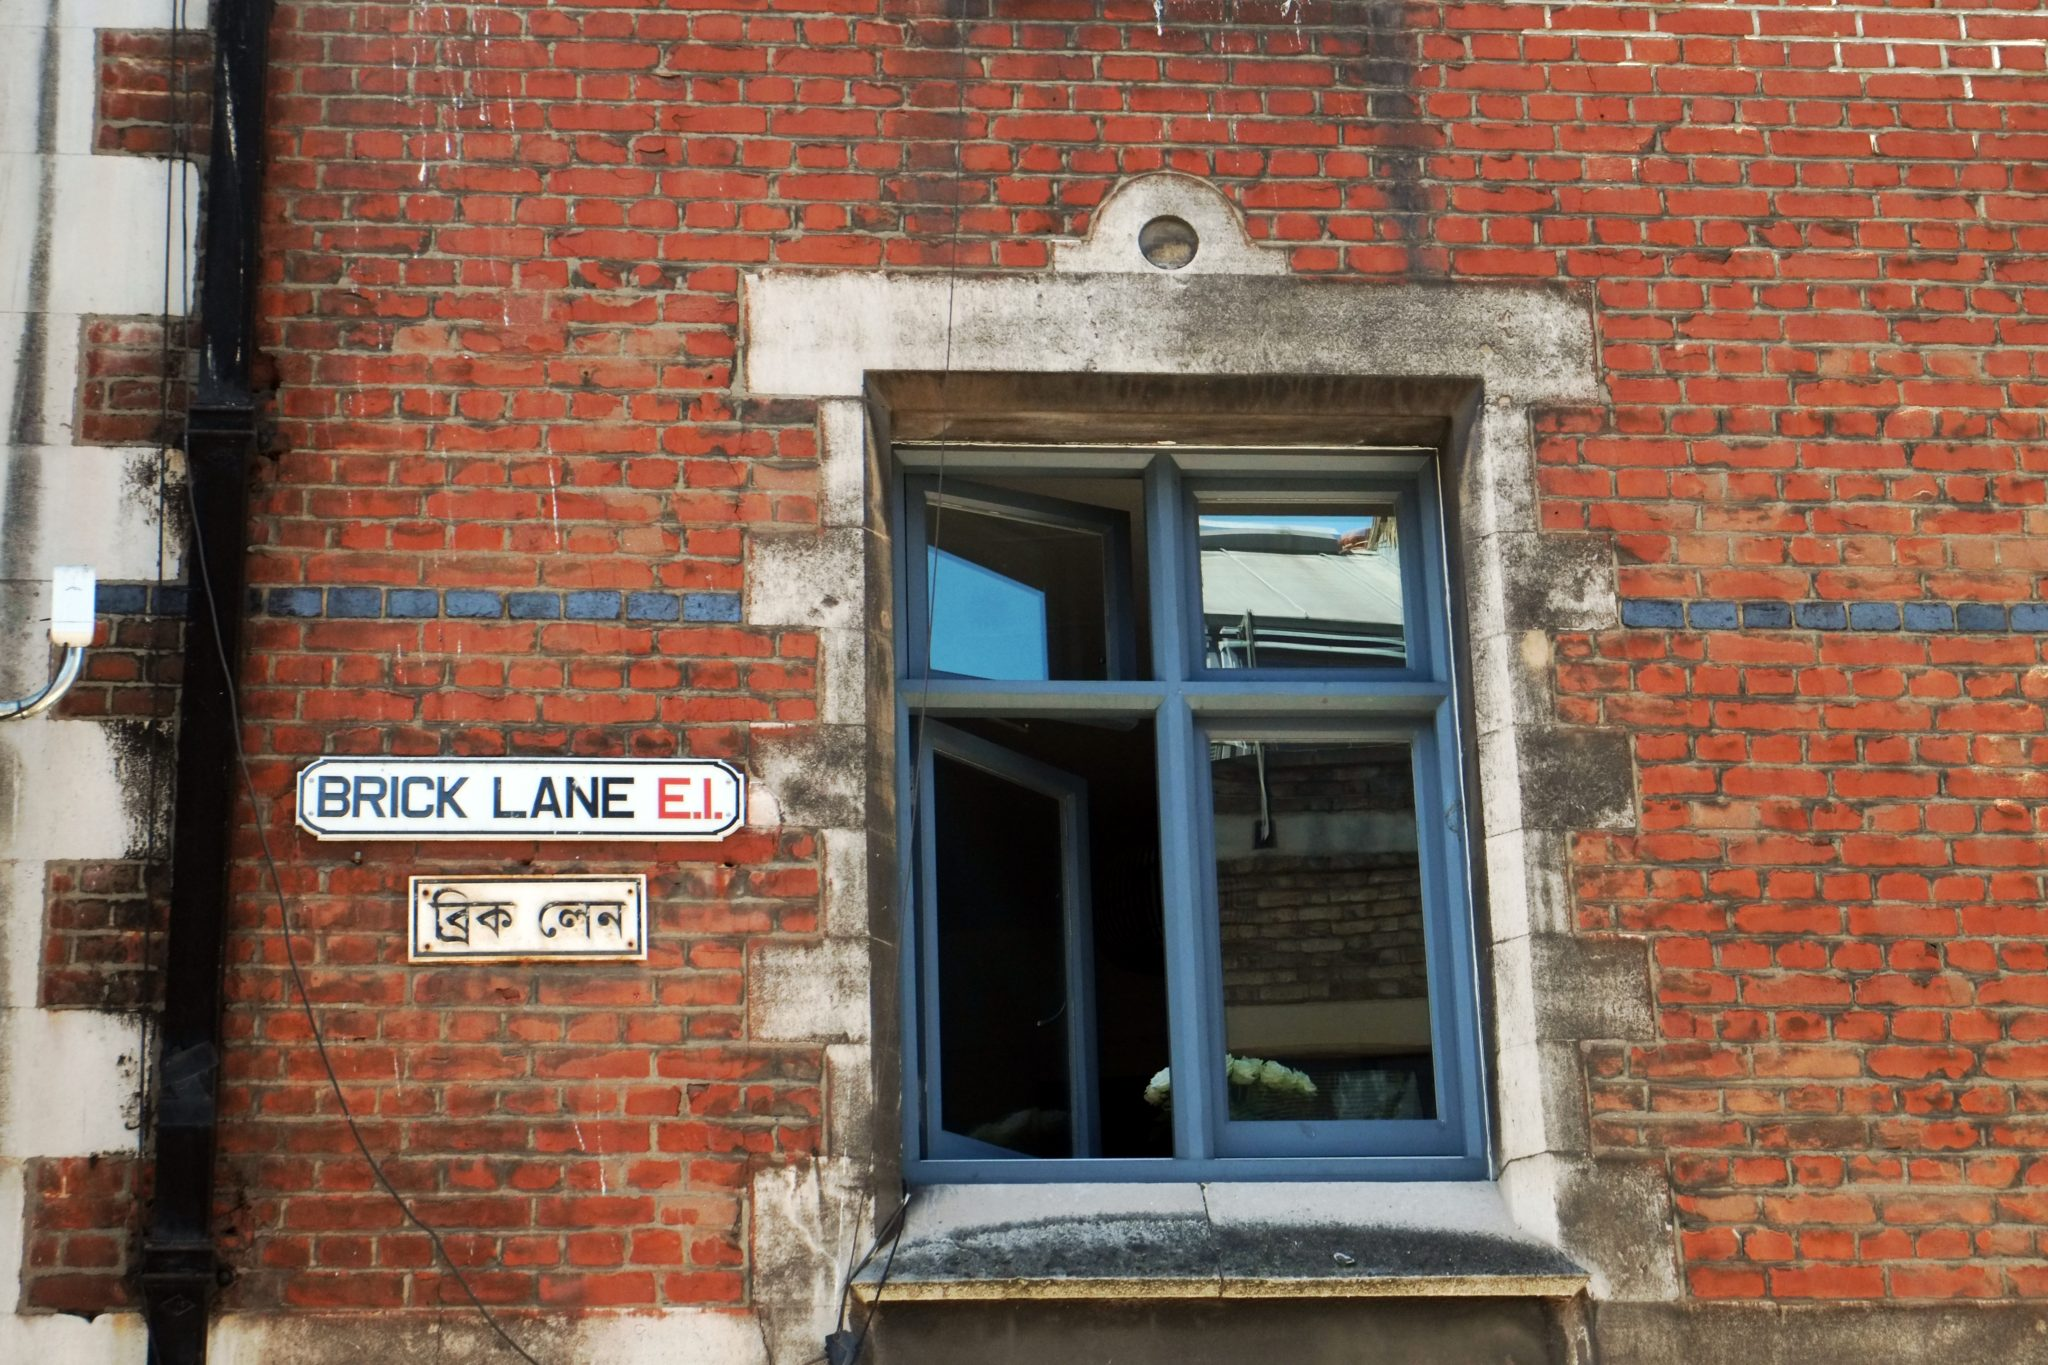 Sign of a Brick Lane in London